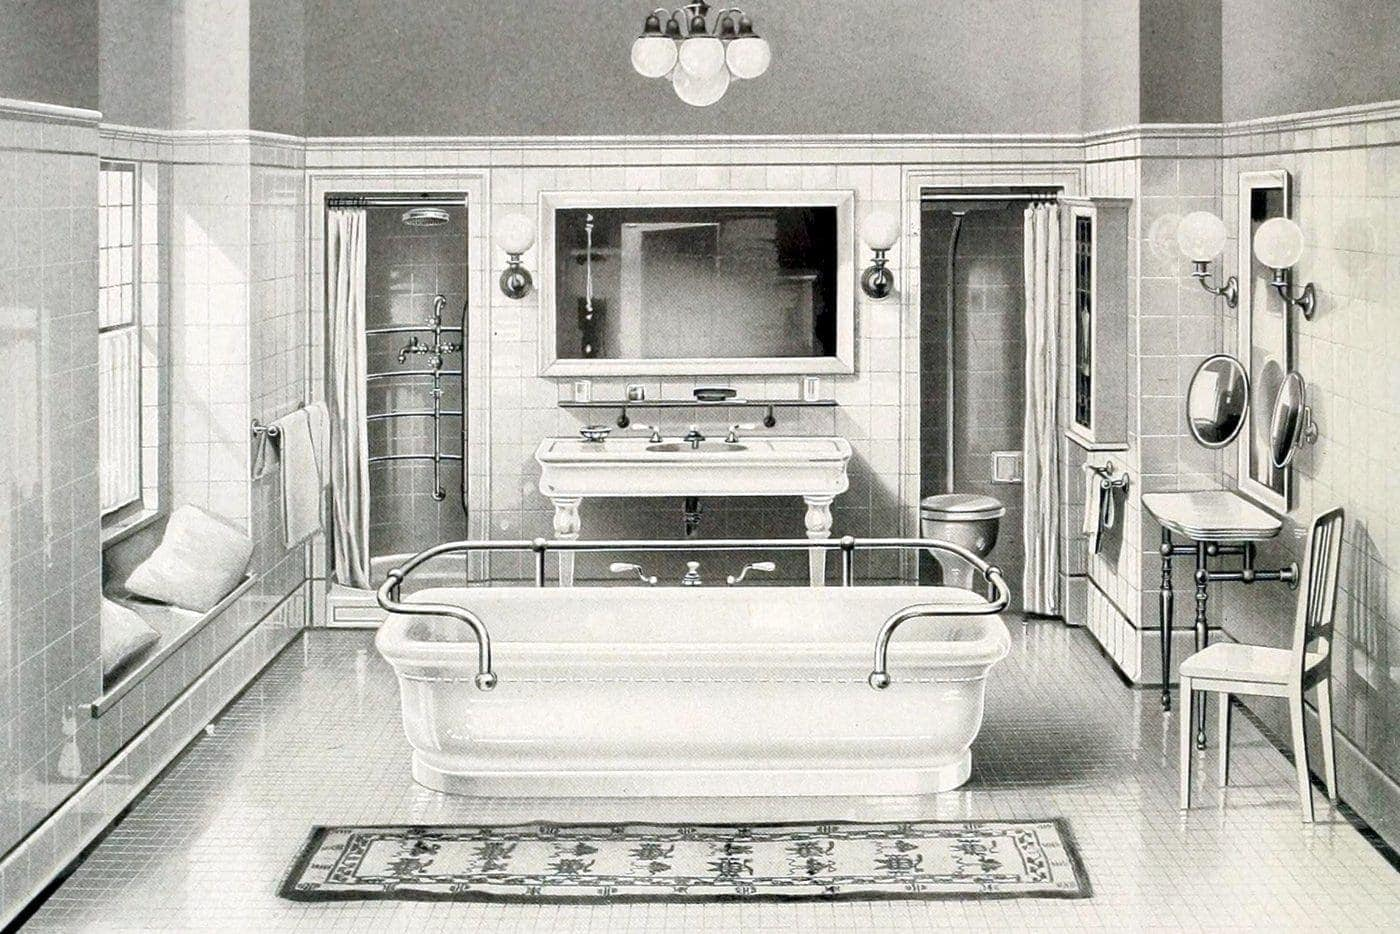 20 Elegant Antique Bathrooms From The 1900s Sinks Tubs Tile Decor Click Americana